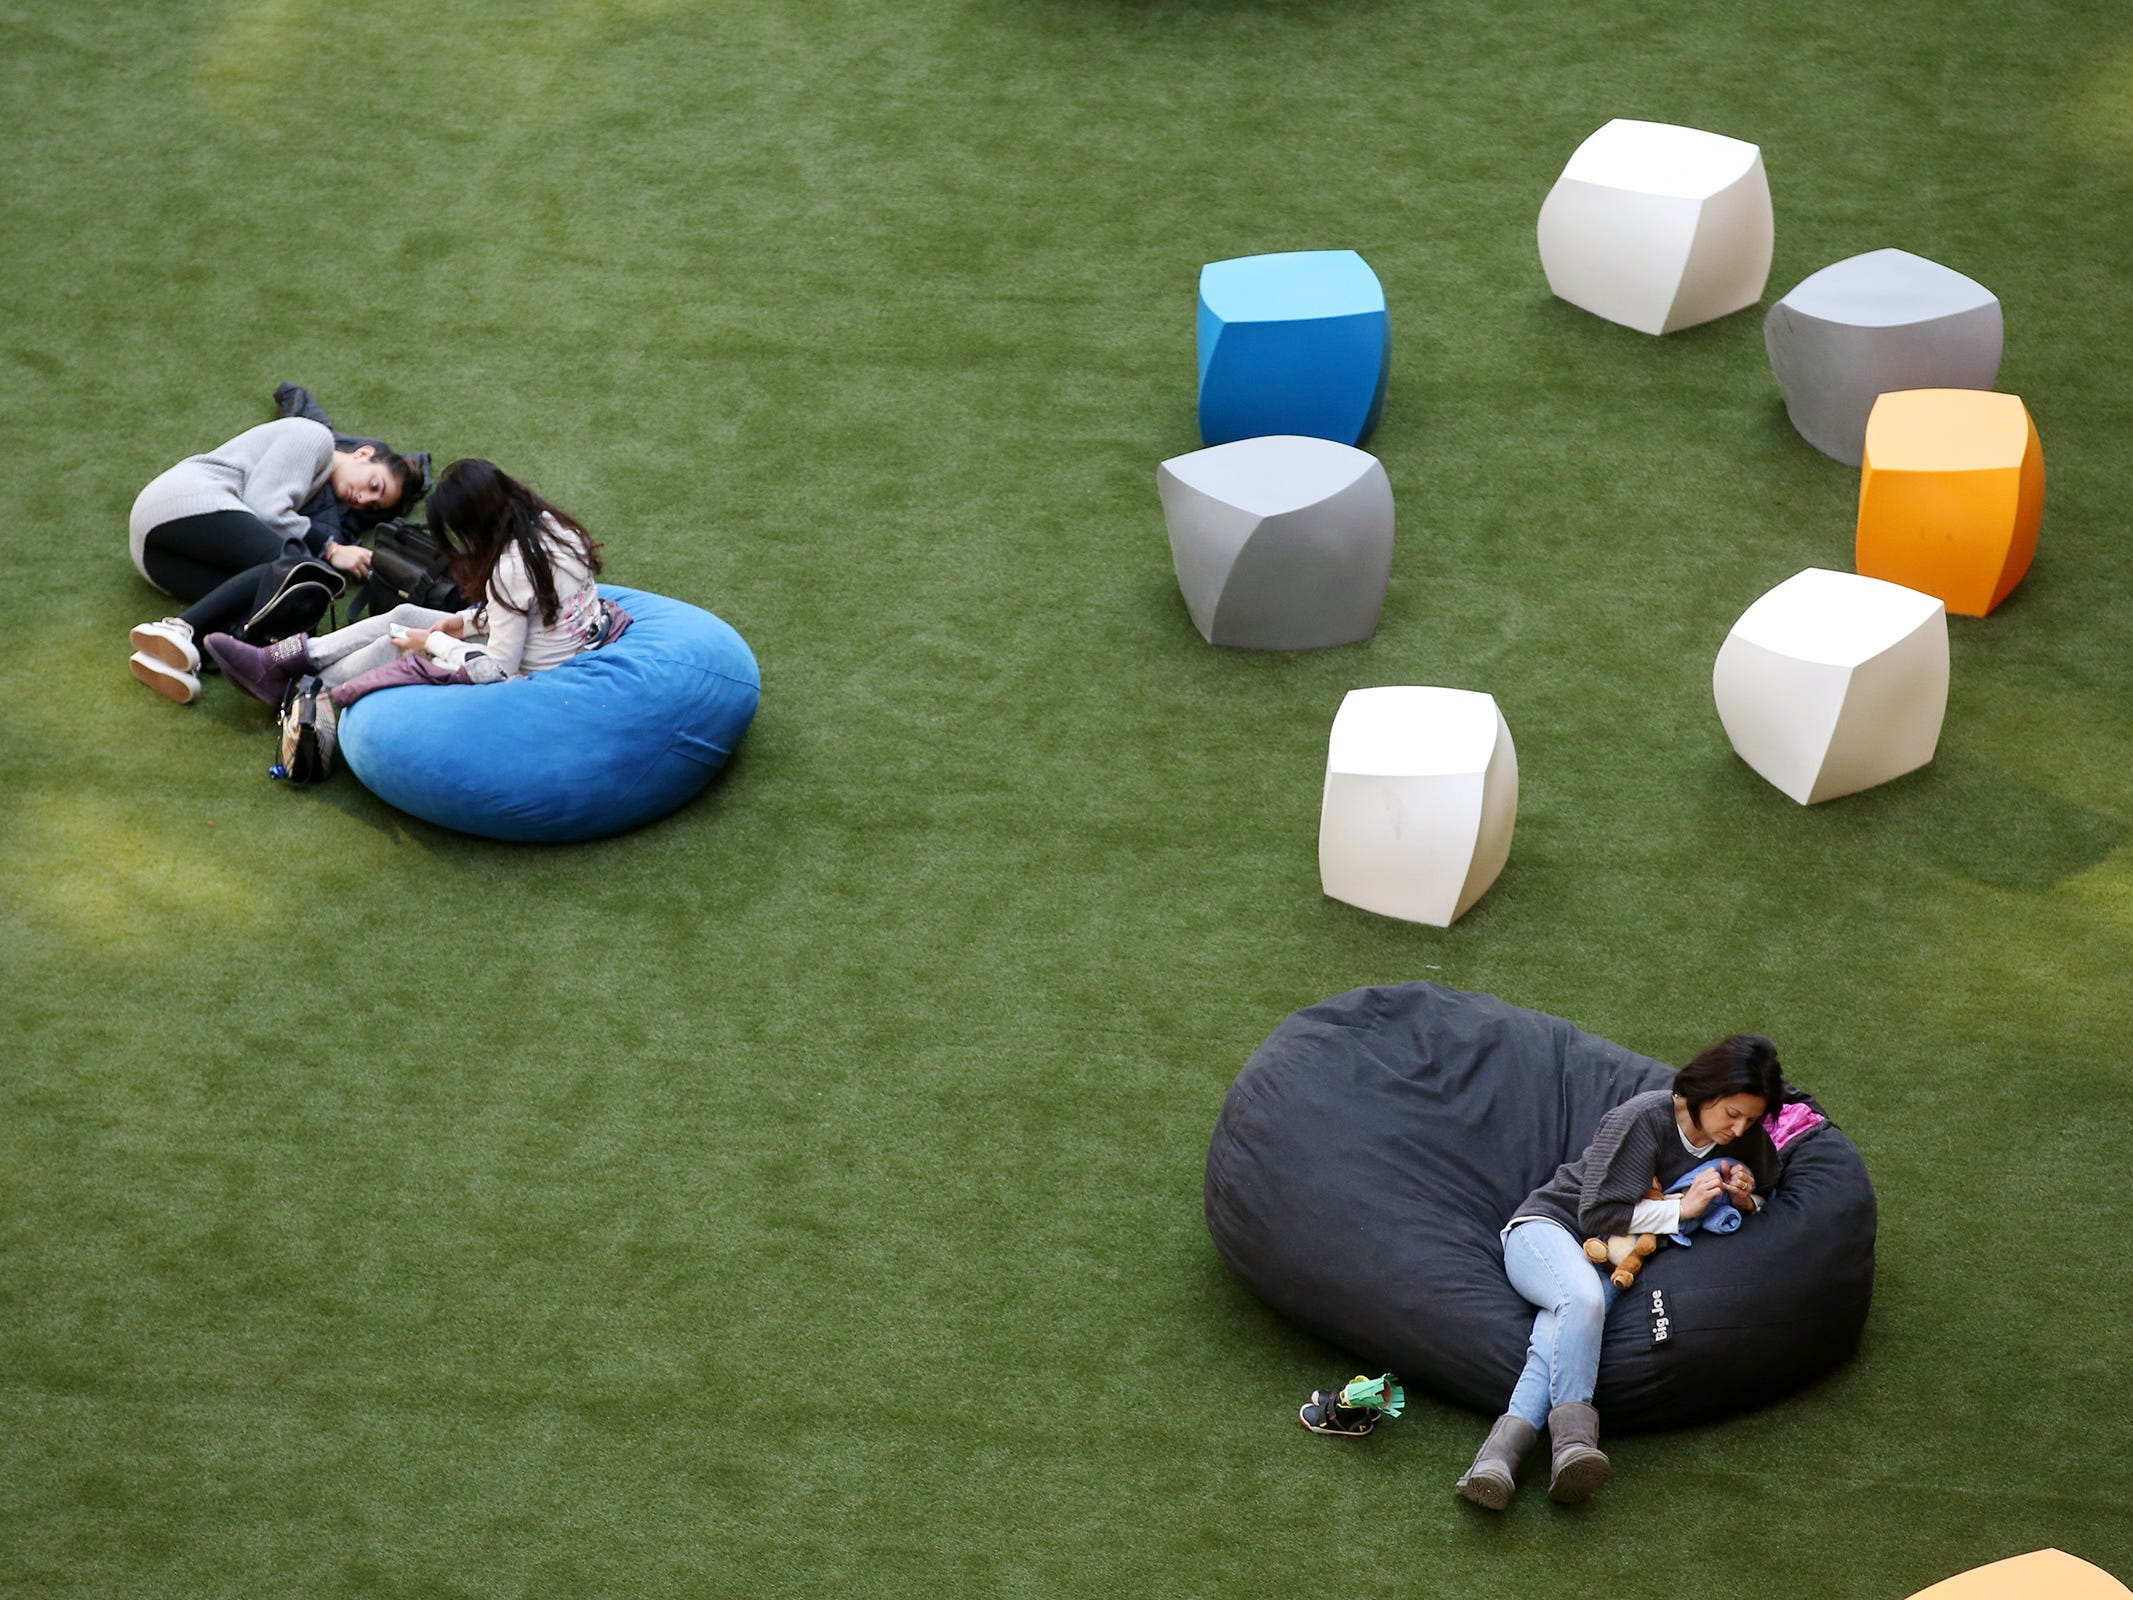 Employees and visitors relax in the common space at Bell Works in Holmdel, NJ Thursday January 31, 2019. Bell Works versus Fort Monmouth. Who's winning? The Shore's two biggest redevelopment projects got underway at about the same time, but Bell Works has pulled far ahead in the race.